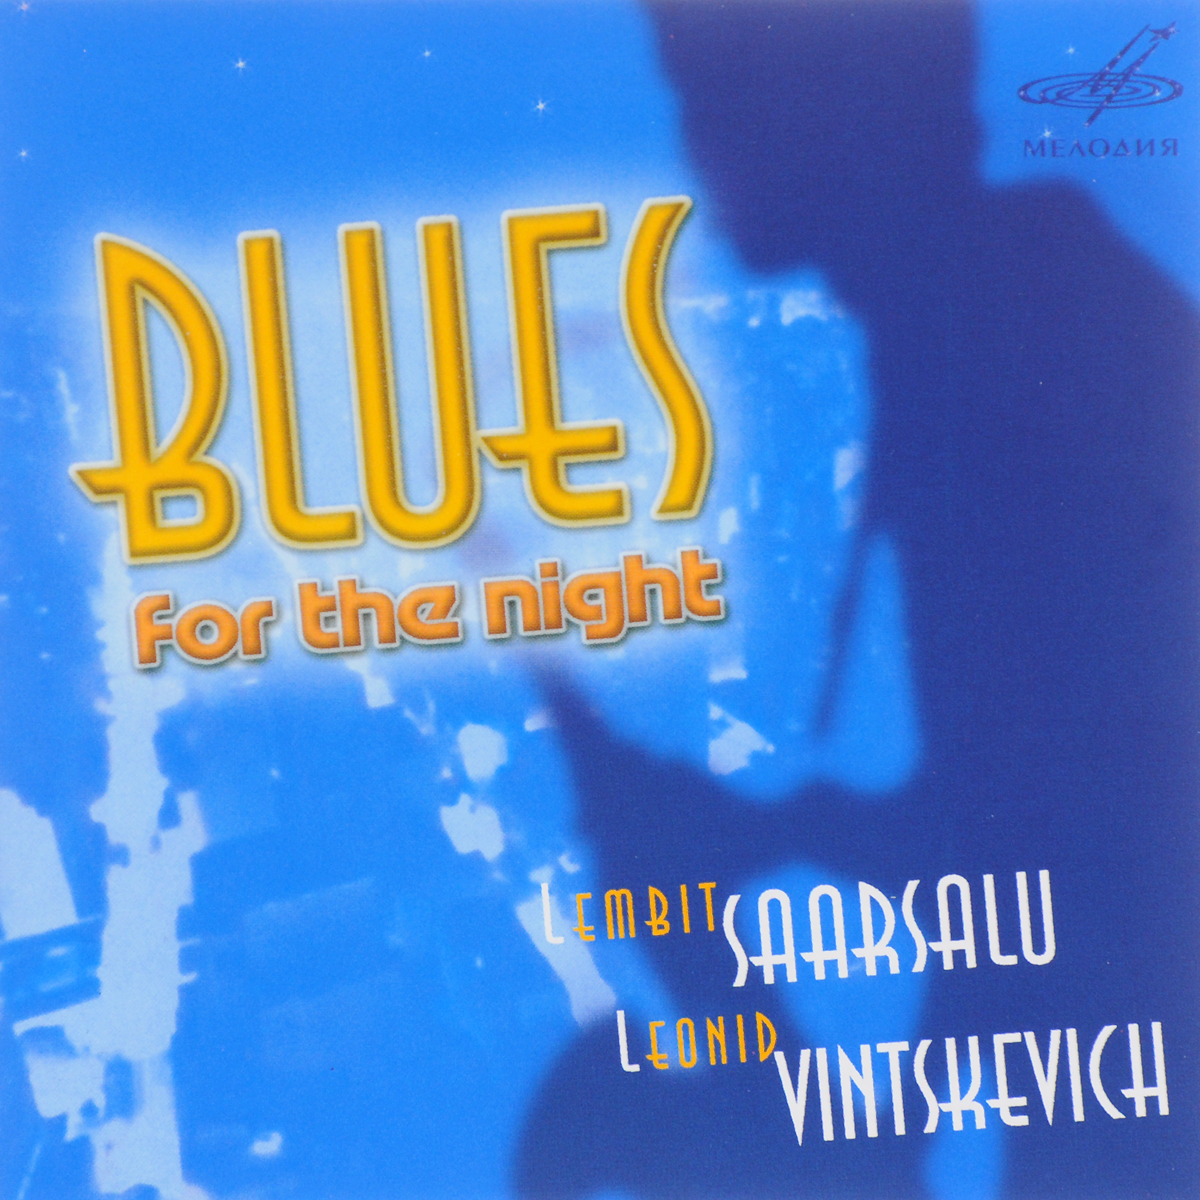 Леонид Винцкевич,Лембит Саарсалу Lembit Saarsalu. Leonid Vintskevich. Blues For The Night